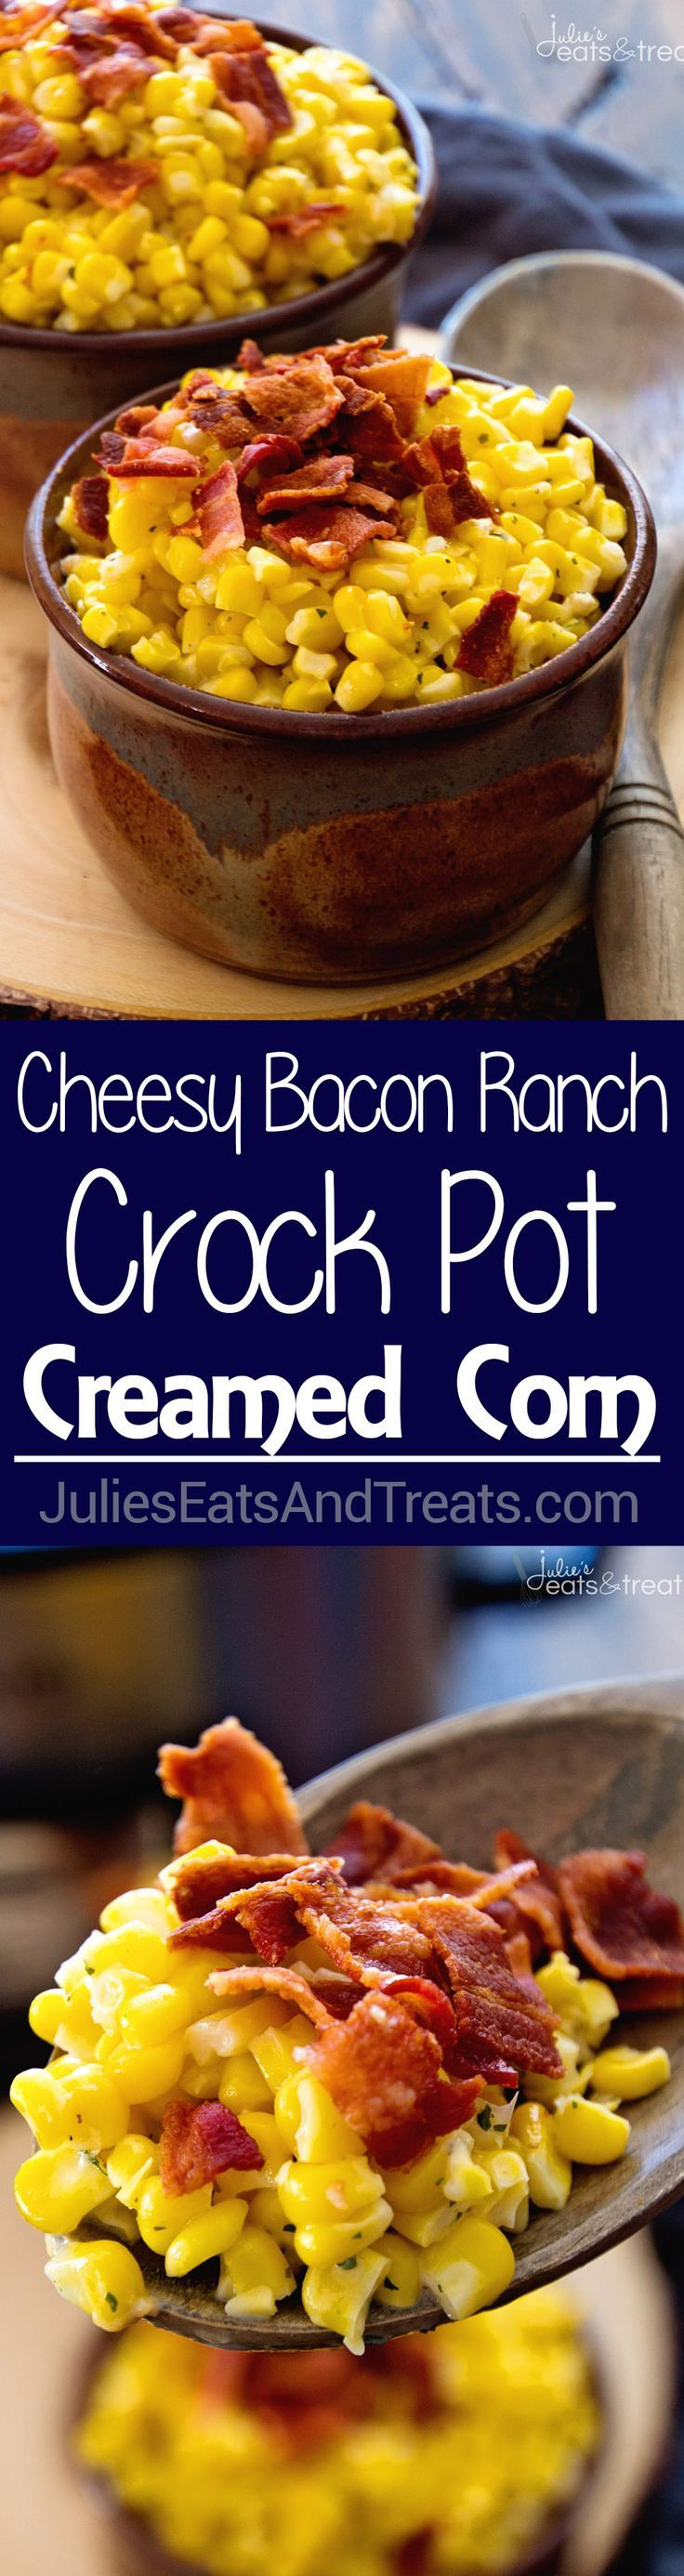 Cheesy Bacon Ranch Crock Pot Creamed Corn Recipe ~ Easy Creamed Corn Recipe full of flavor from Ranch Seasoning, Bacon and Cheese! The Perfect Side Dish for the Holidays or Dinner!